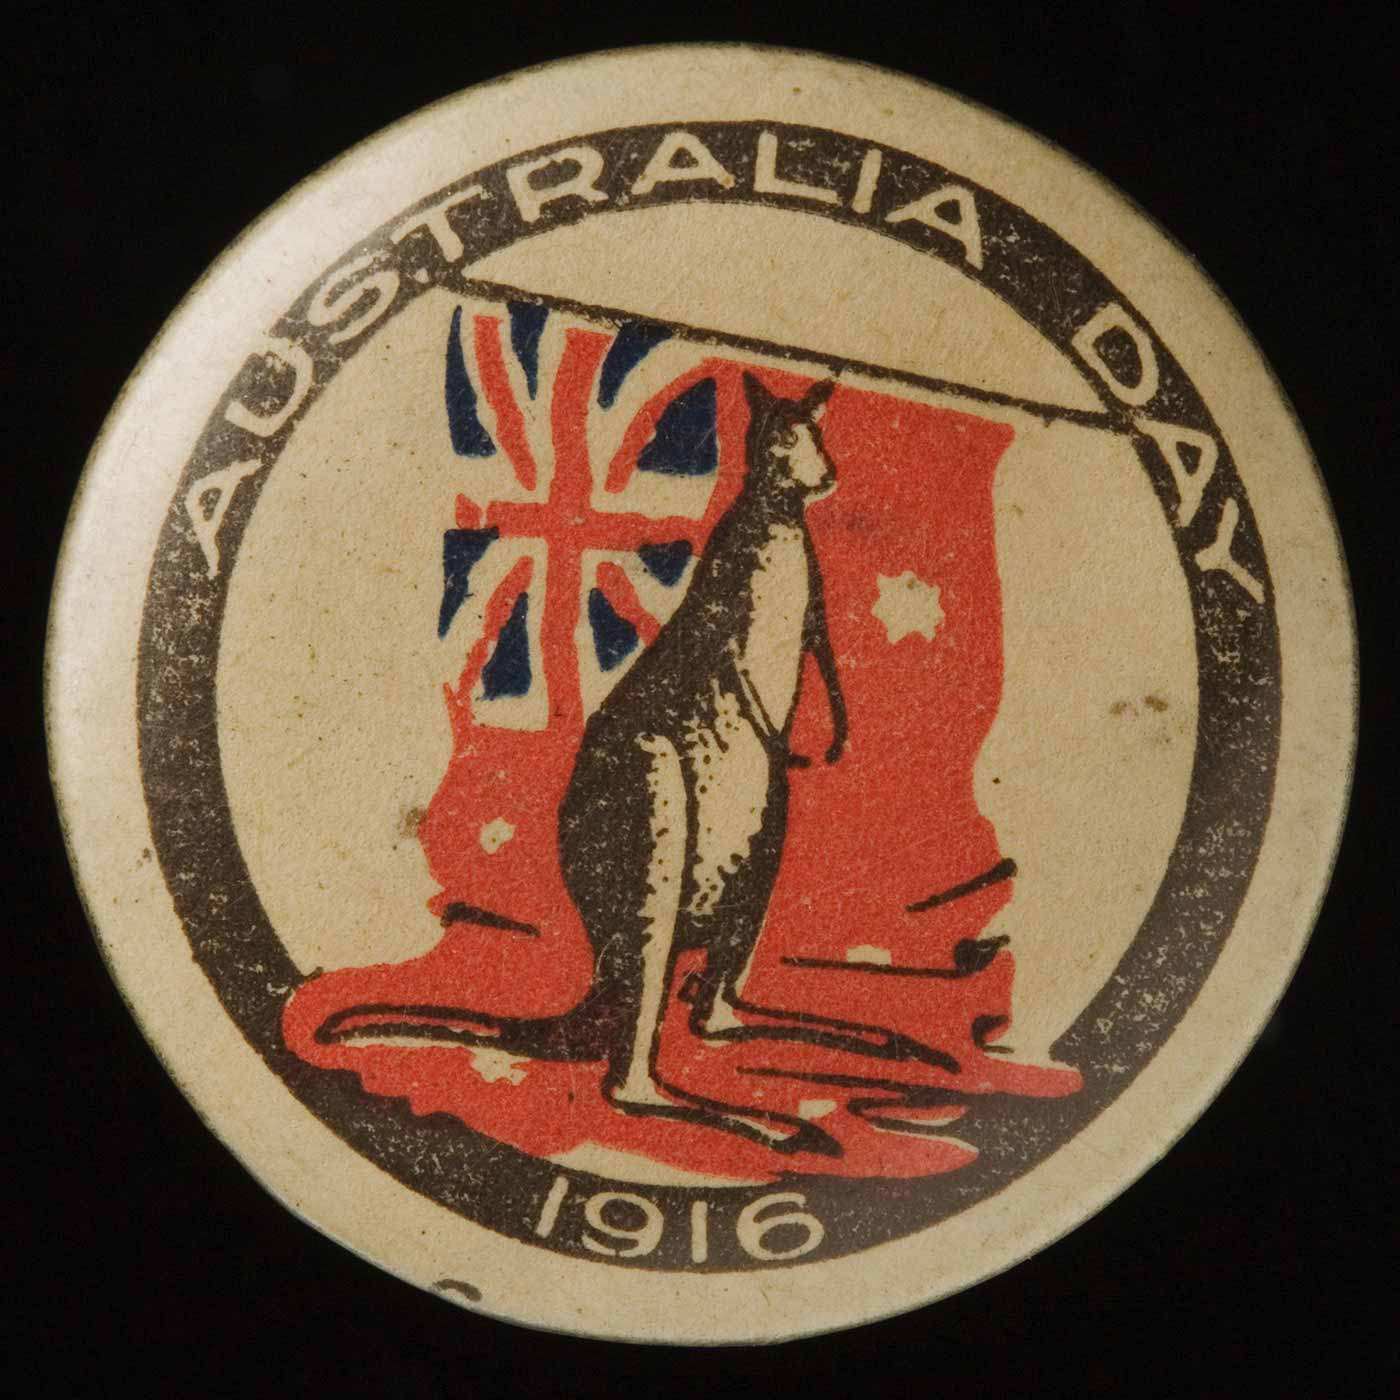 Circular badge with 'Australia Day 1916' printed in a black circular band. The central image shows a kangaroo standing on a red ensign. - click to view larger image